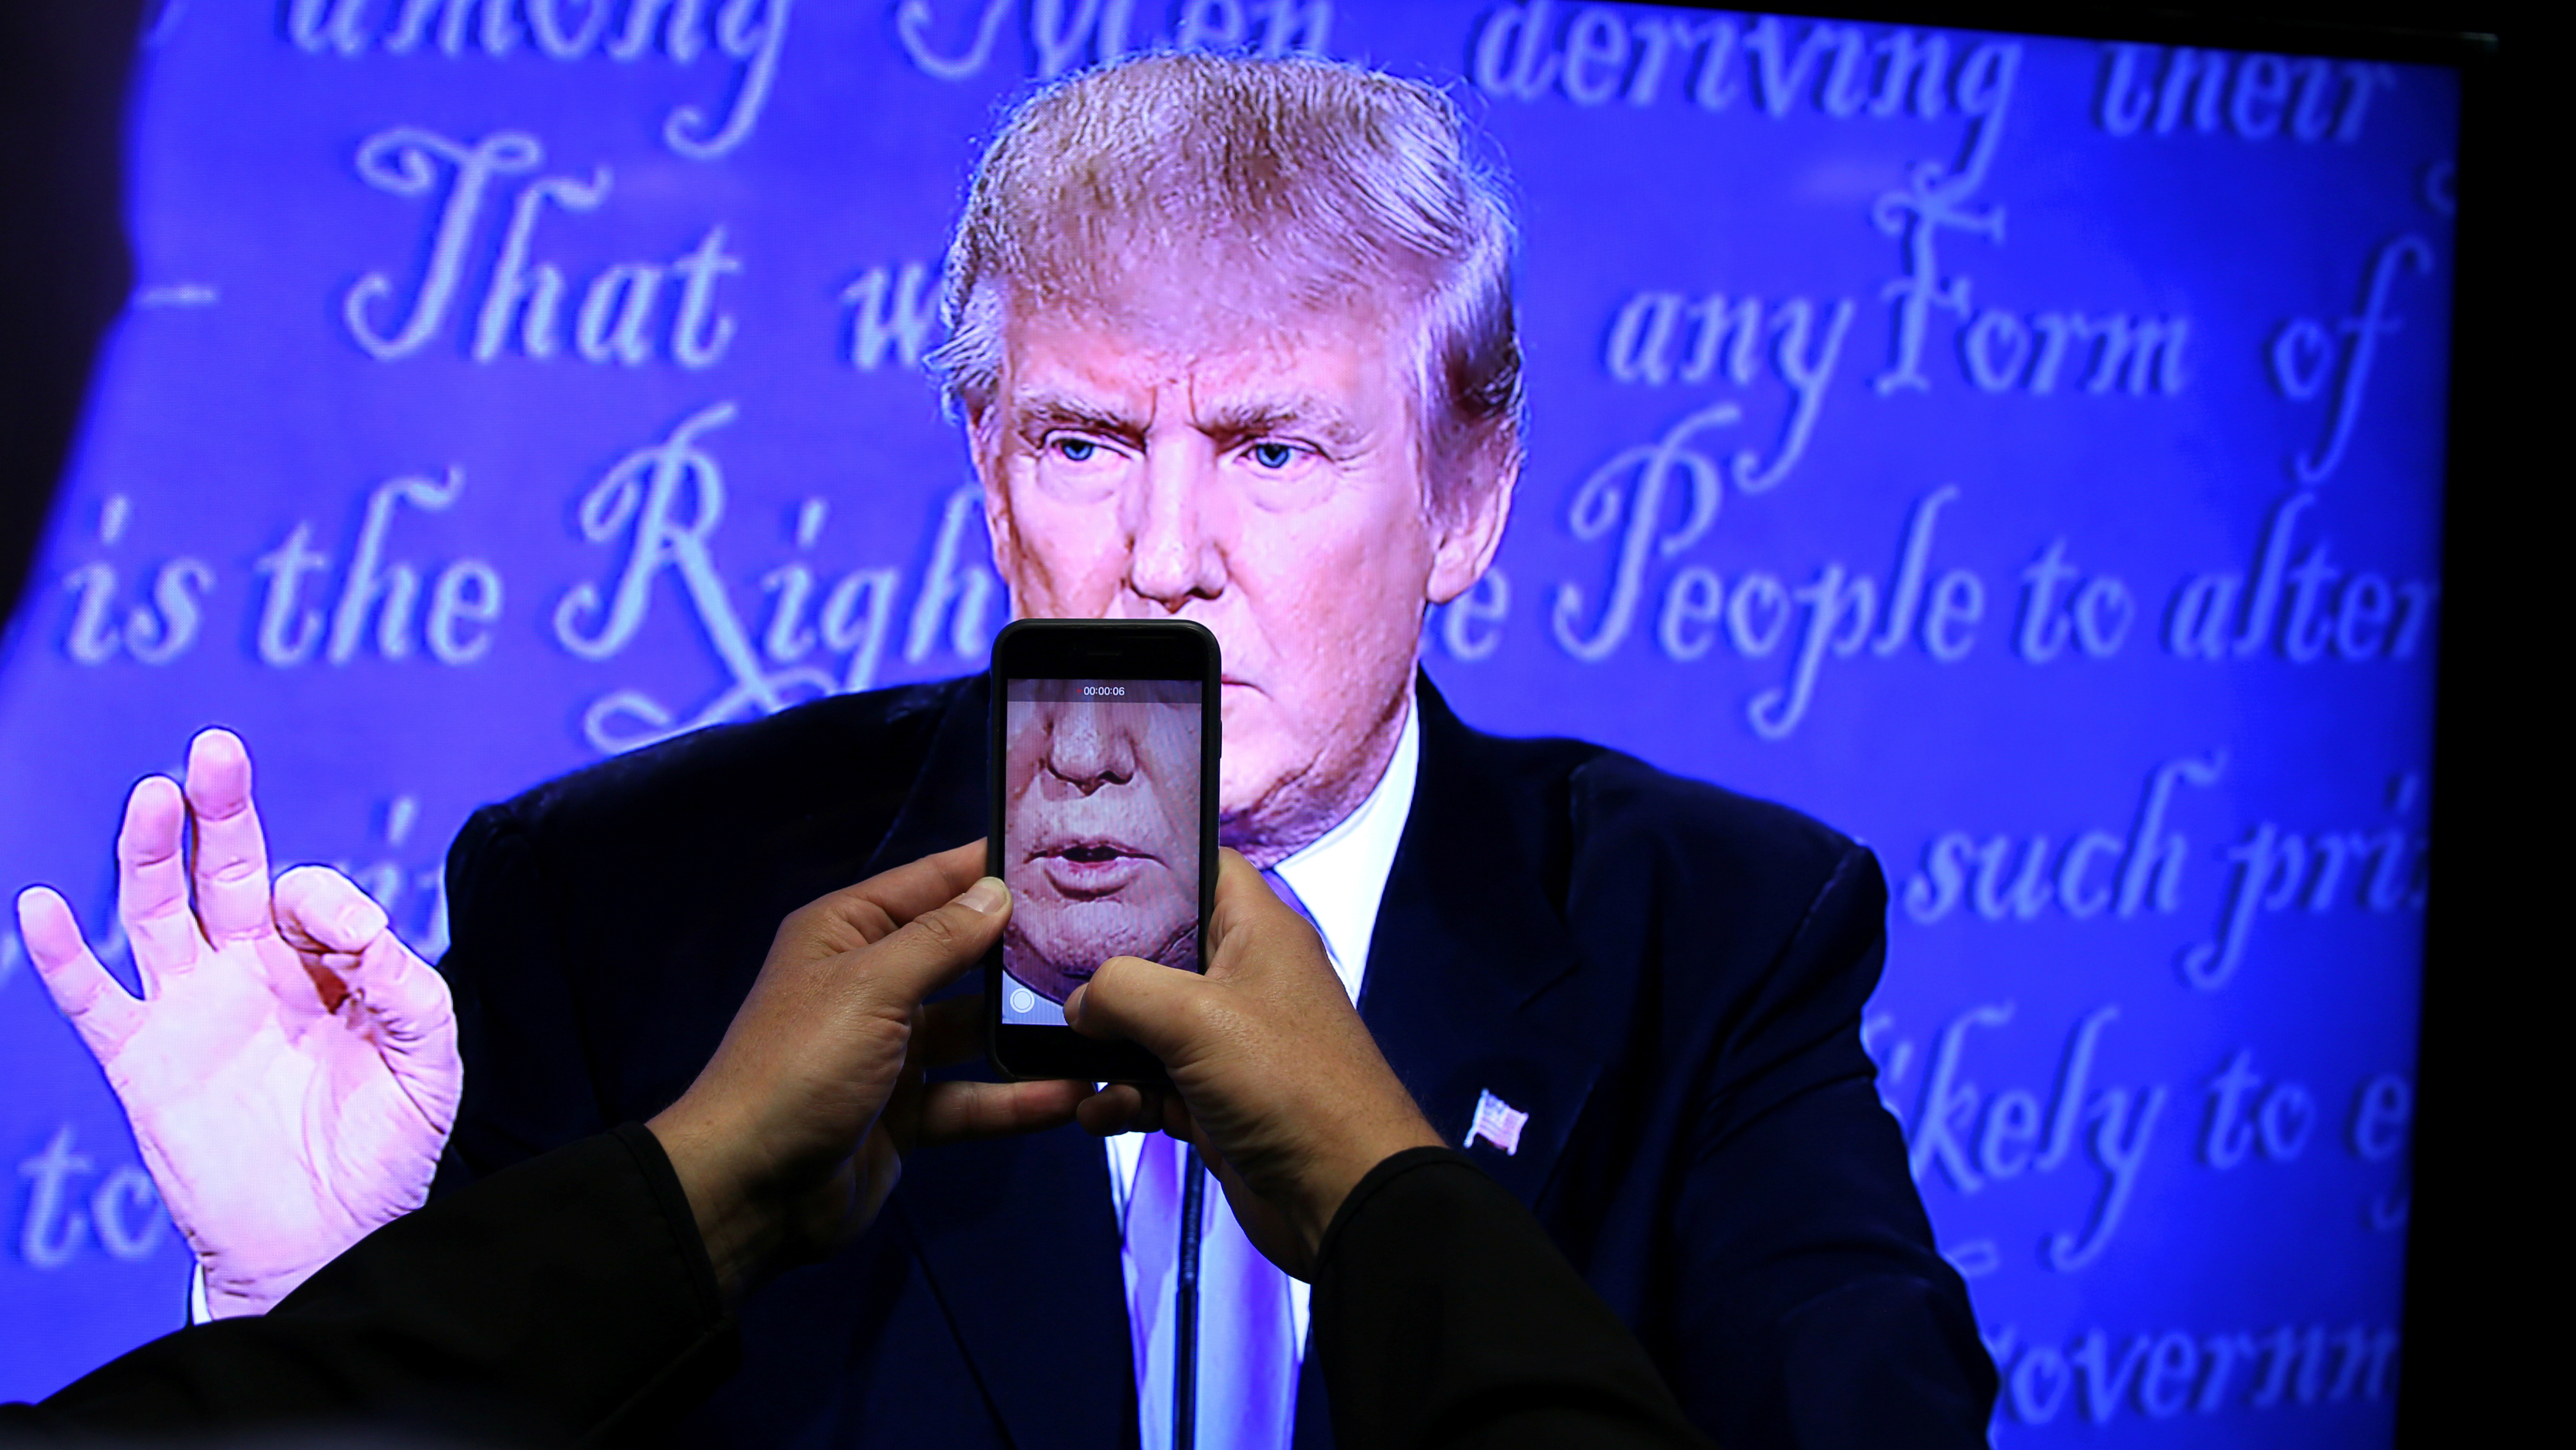 Trump speaks at a podium with a smartphone camera shot in front of his mouth